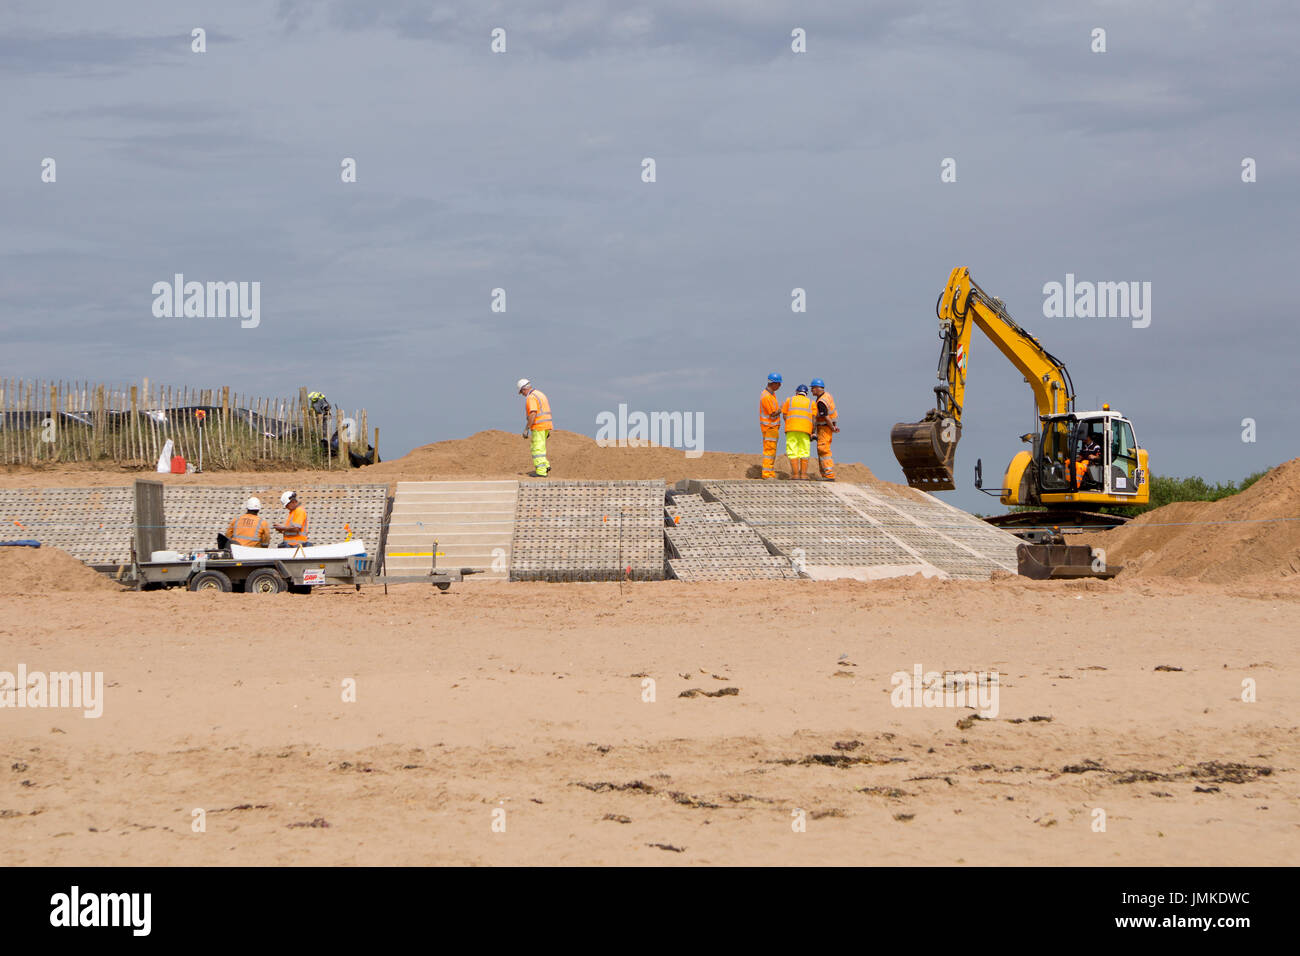 Men working on a beach building access points and reinforcing banks - Stock Image